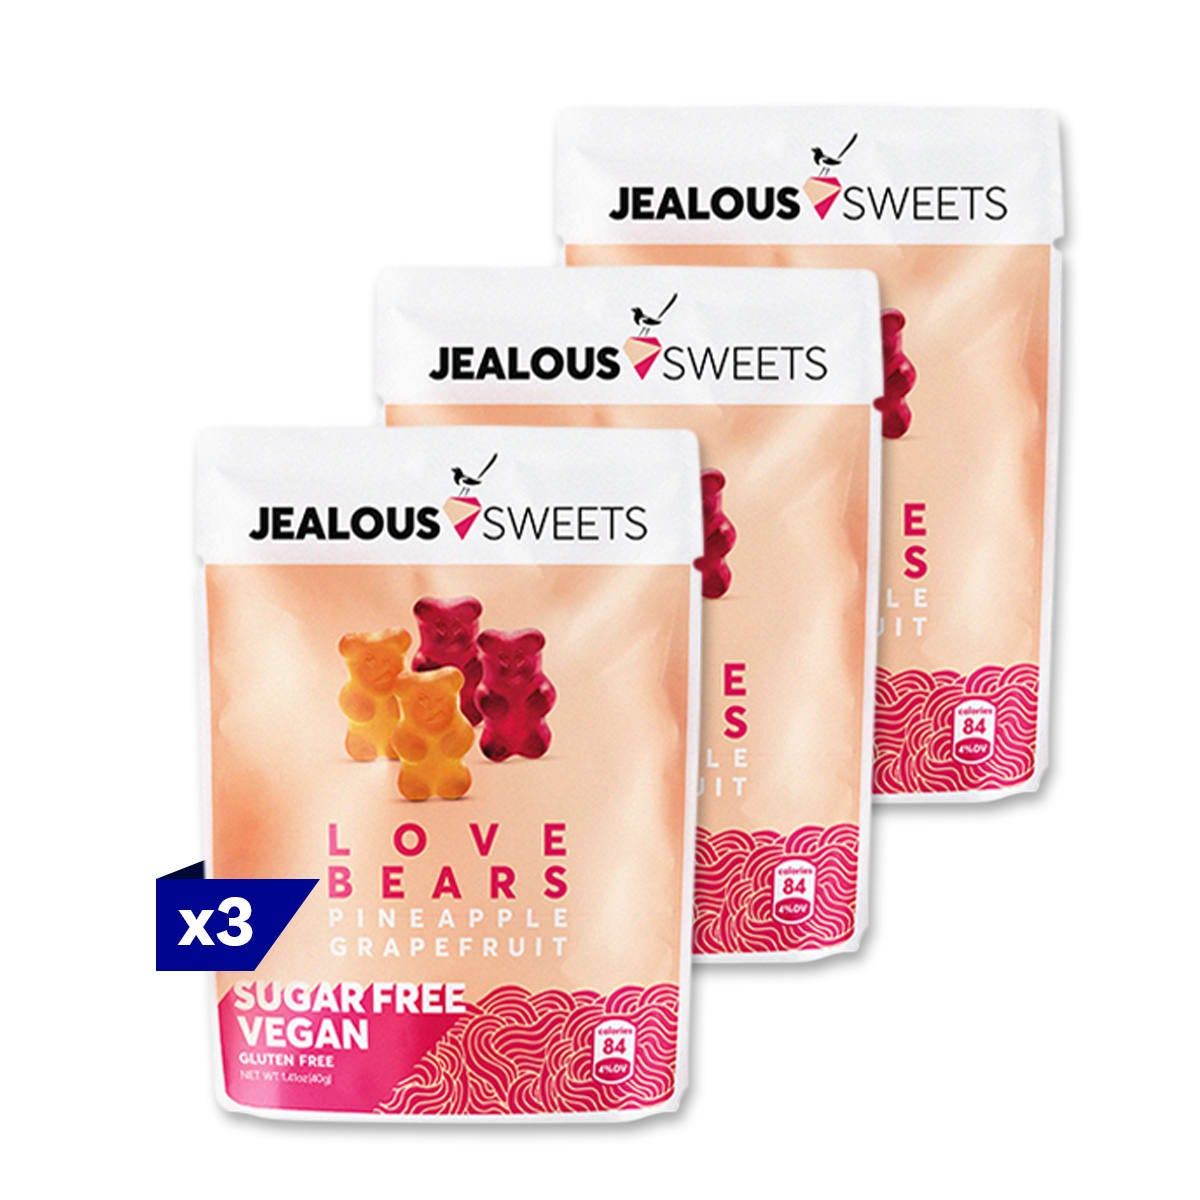 3 packs, Jealous Sweets Love Bears, mouth watering natural taste of pineapple or grapefruit, 3 SmartPoints values, suitable for vegans, gluten free